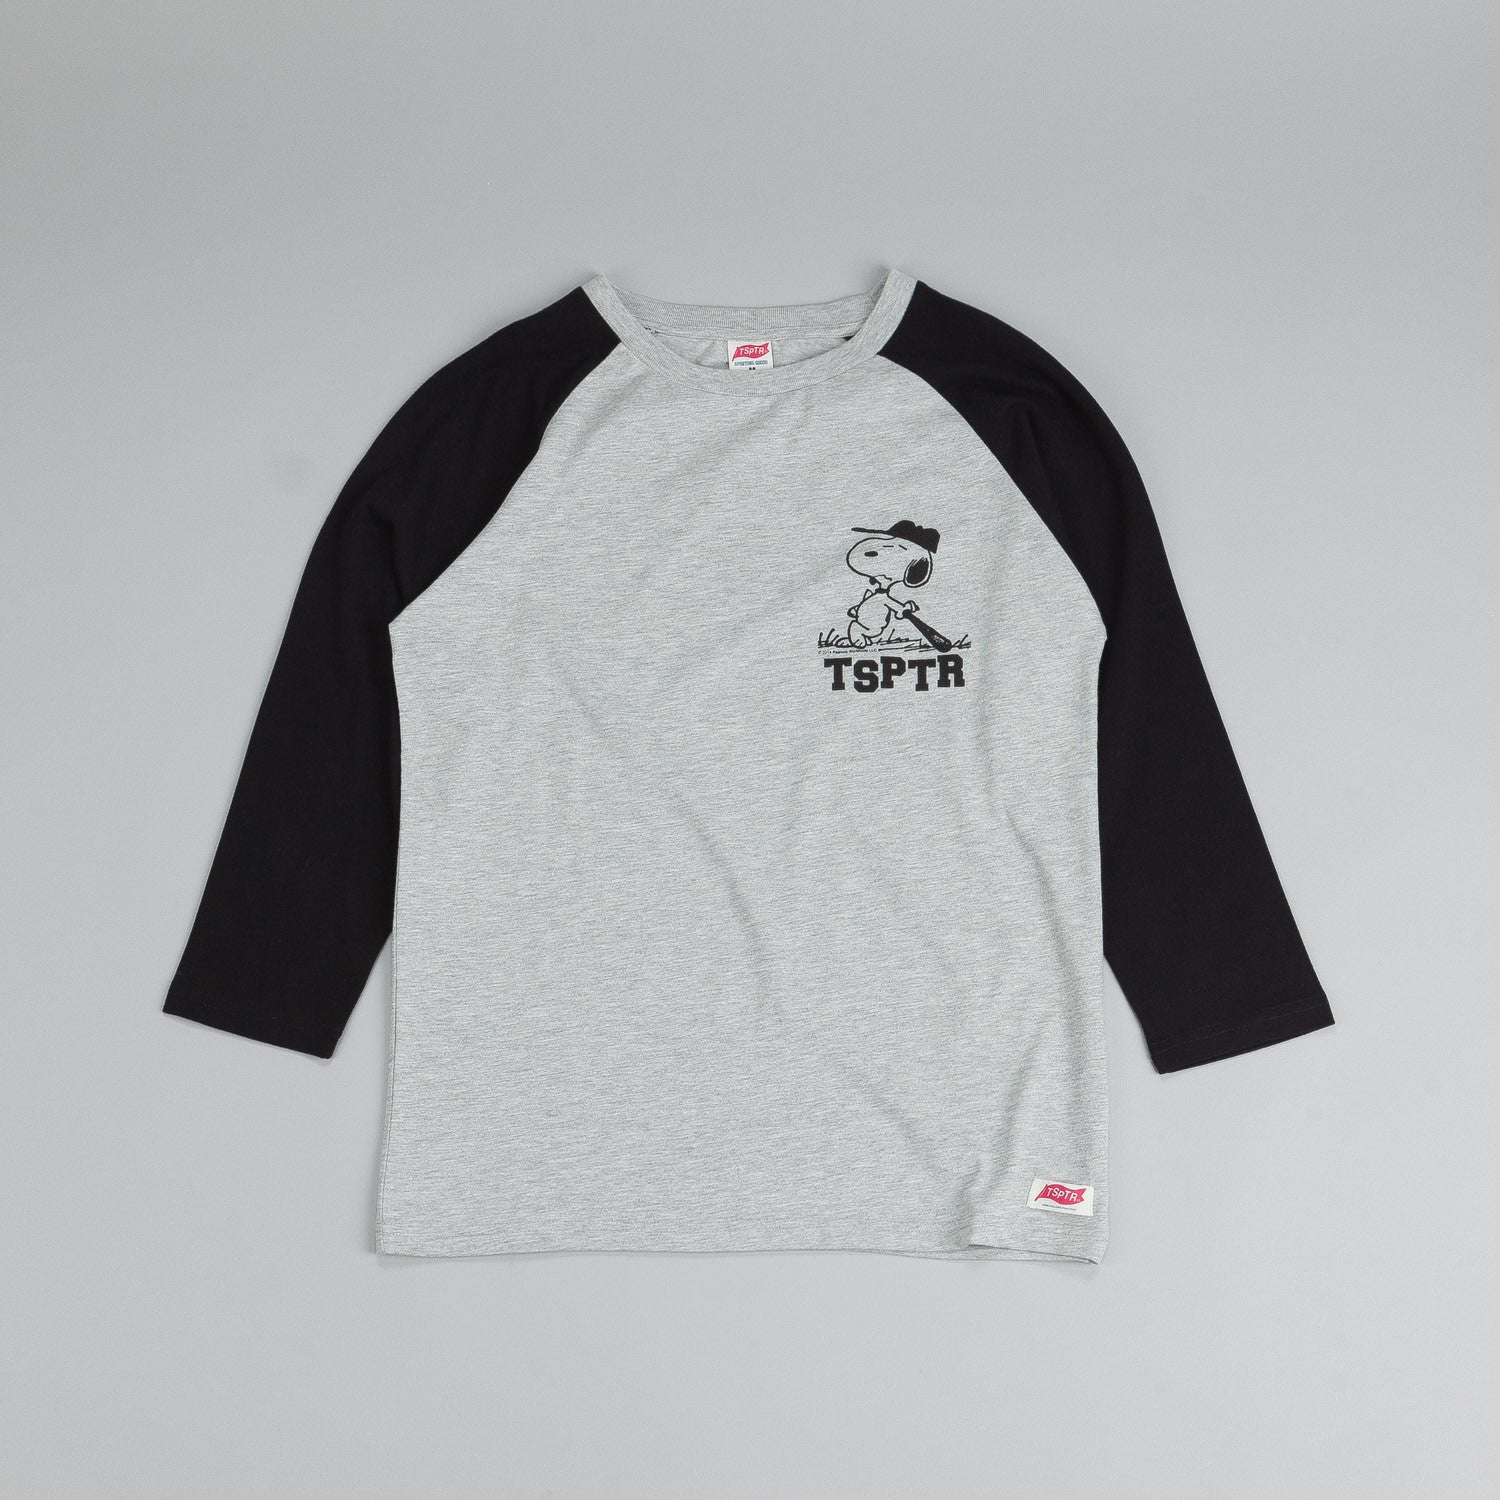 TSPTR Snoopy Raglan T Shirt Black / Grey